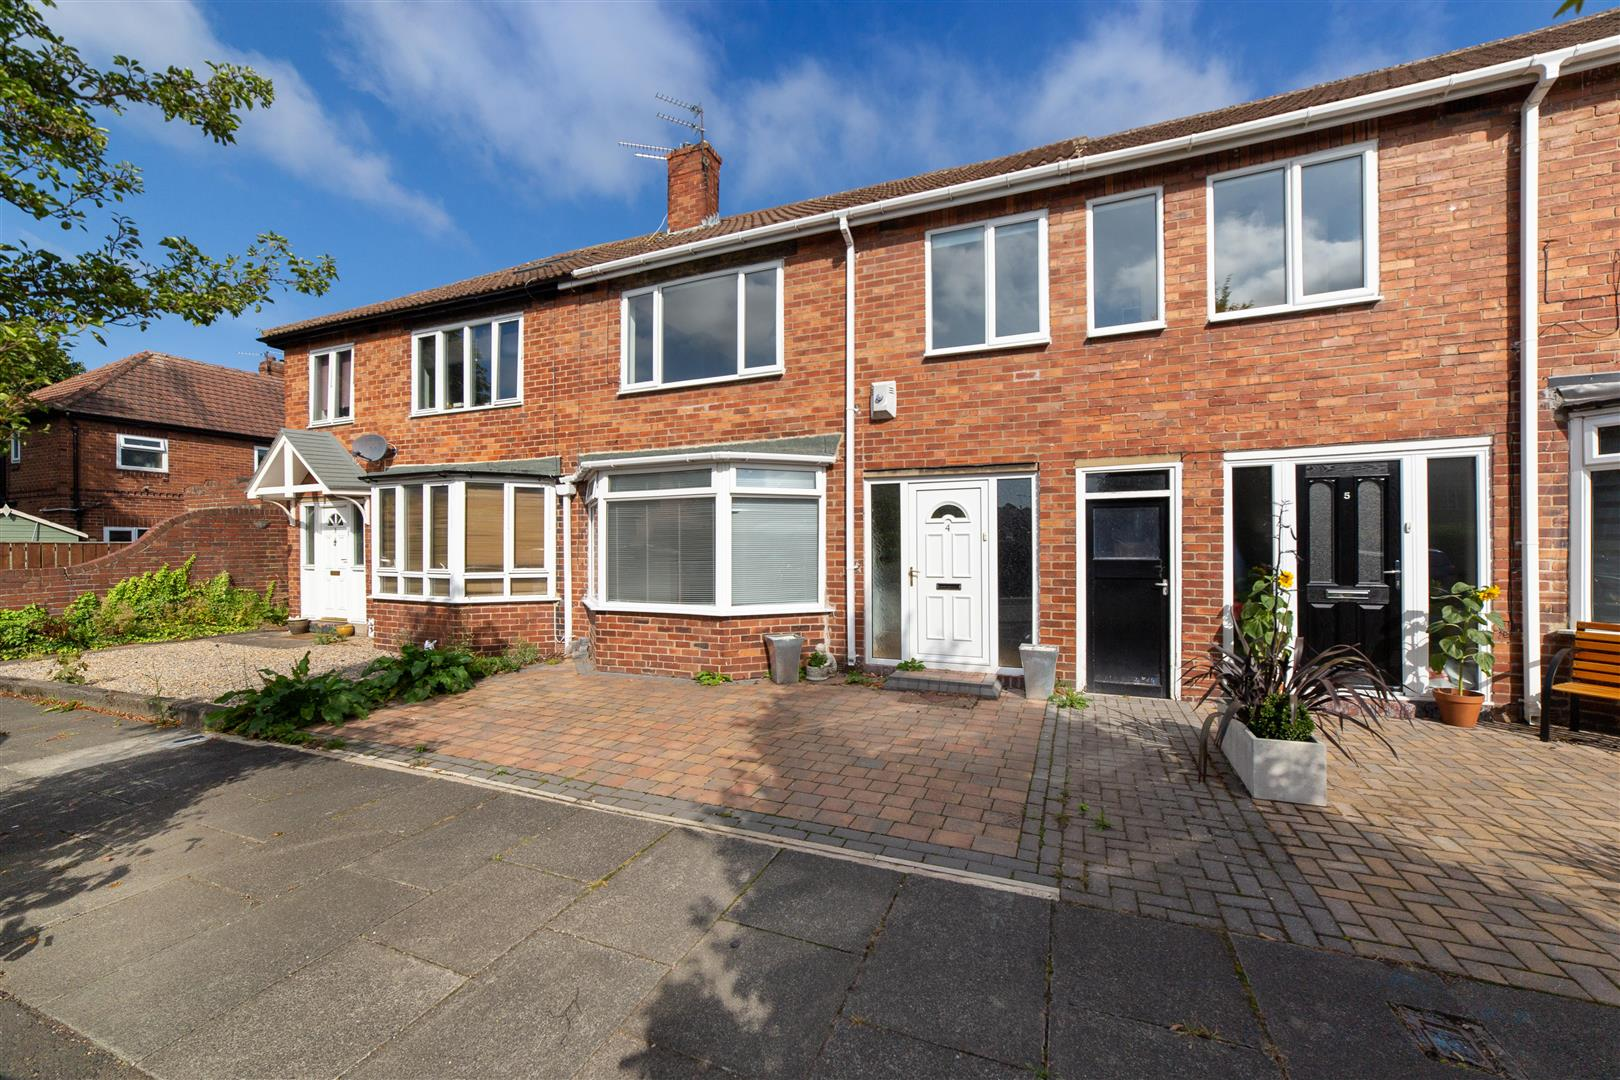 3 bed terraced house for sale in Grasmere Place, Newcastle Upon Tyne, NE3